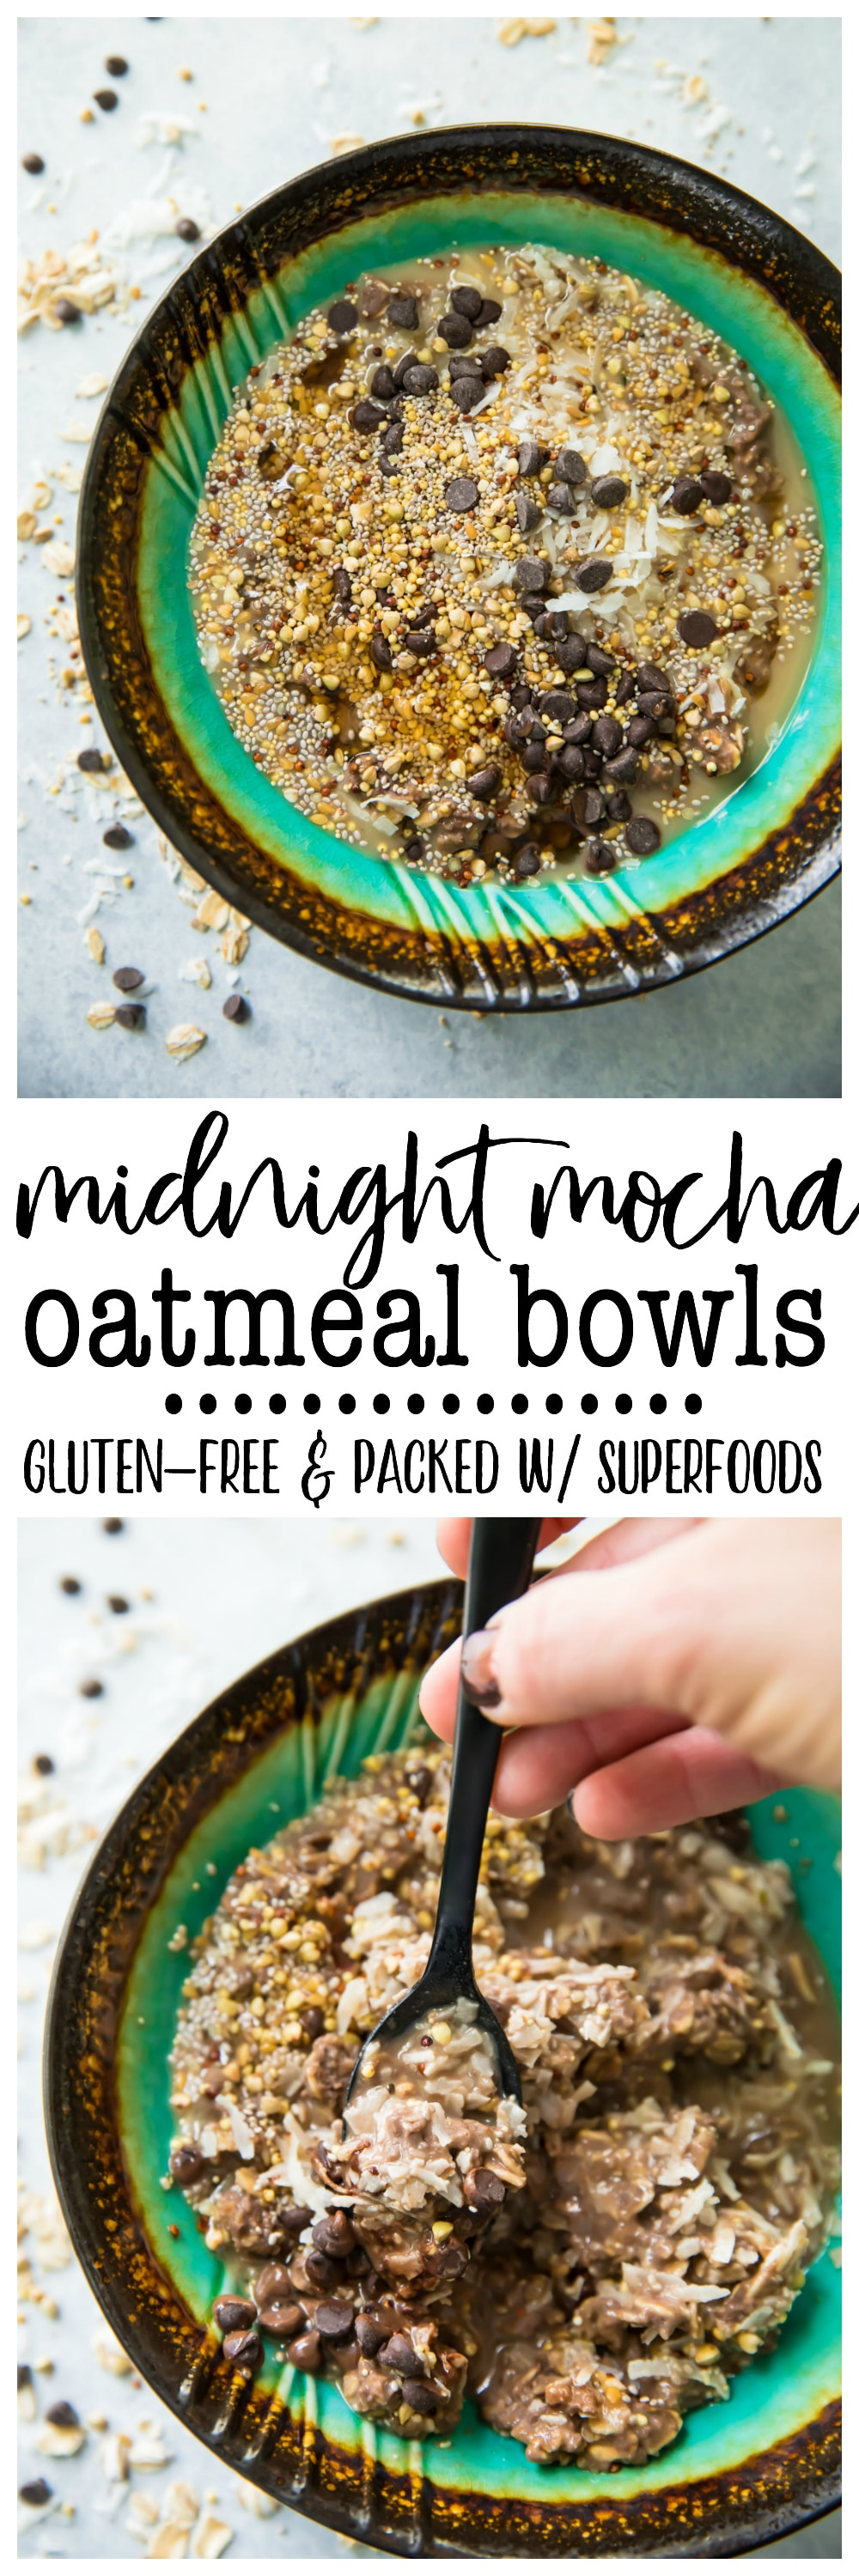 Coffeelovers rejoice! Take oatmeal to a whole new level of deliciousness with wholesome, yet decadent Midnight Mocha Oatmeal Bowls.This breakfast will make you excited to get out of bed in themorning! Vegan friendly, gluten-free, and packed with fiber, these oatmeal bowls make a perfect healthy and easy breakfast or snack!